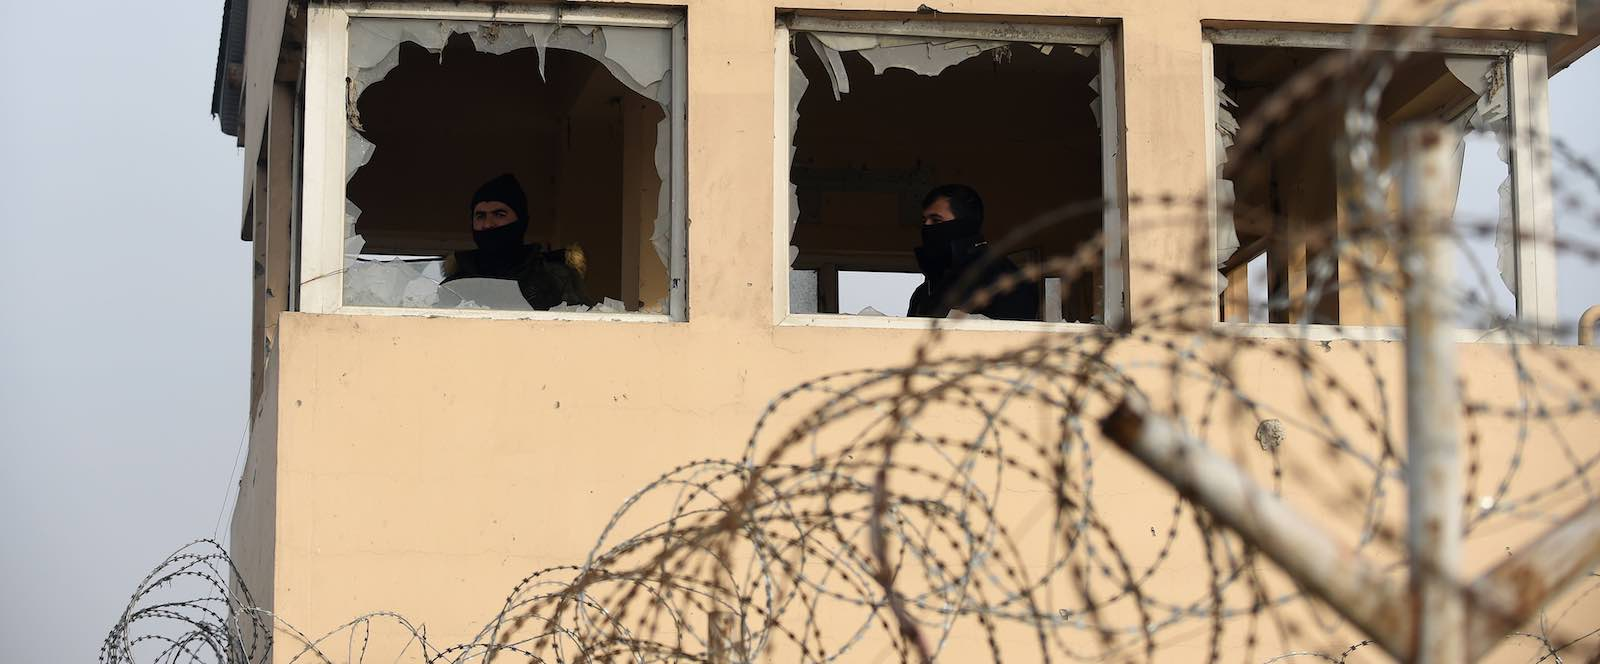 Private security guards in Kabul keep watch near the site of a 15 January attack claimed by the Taliban (Photo: Wakil Kohsar via Getty)